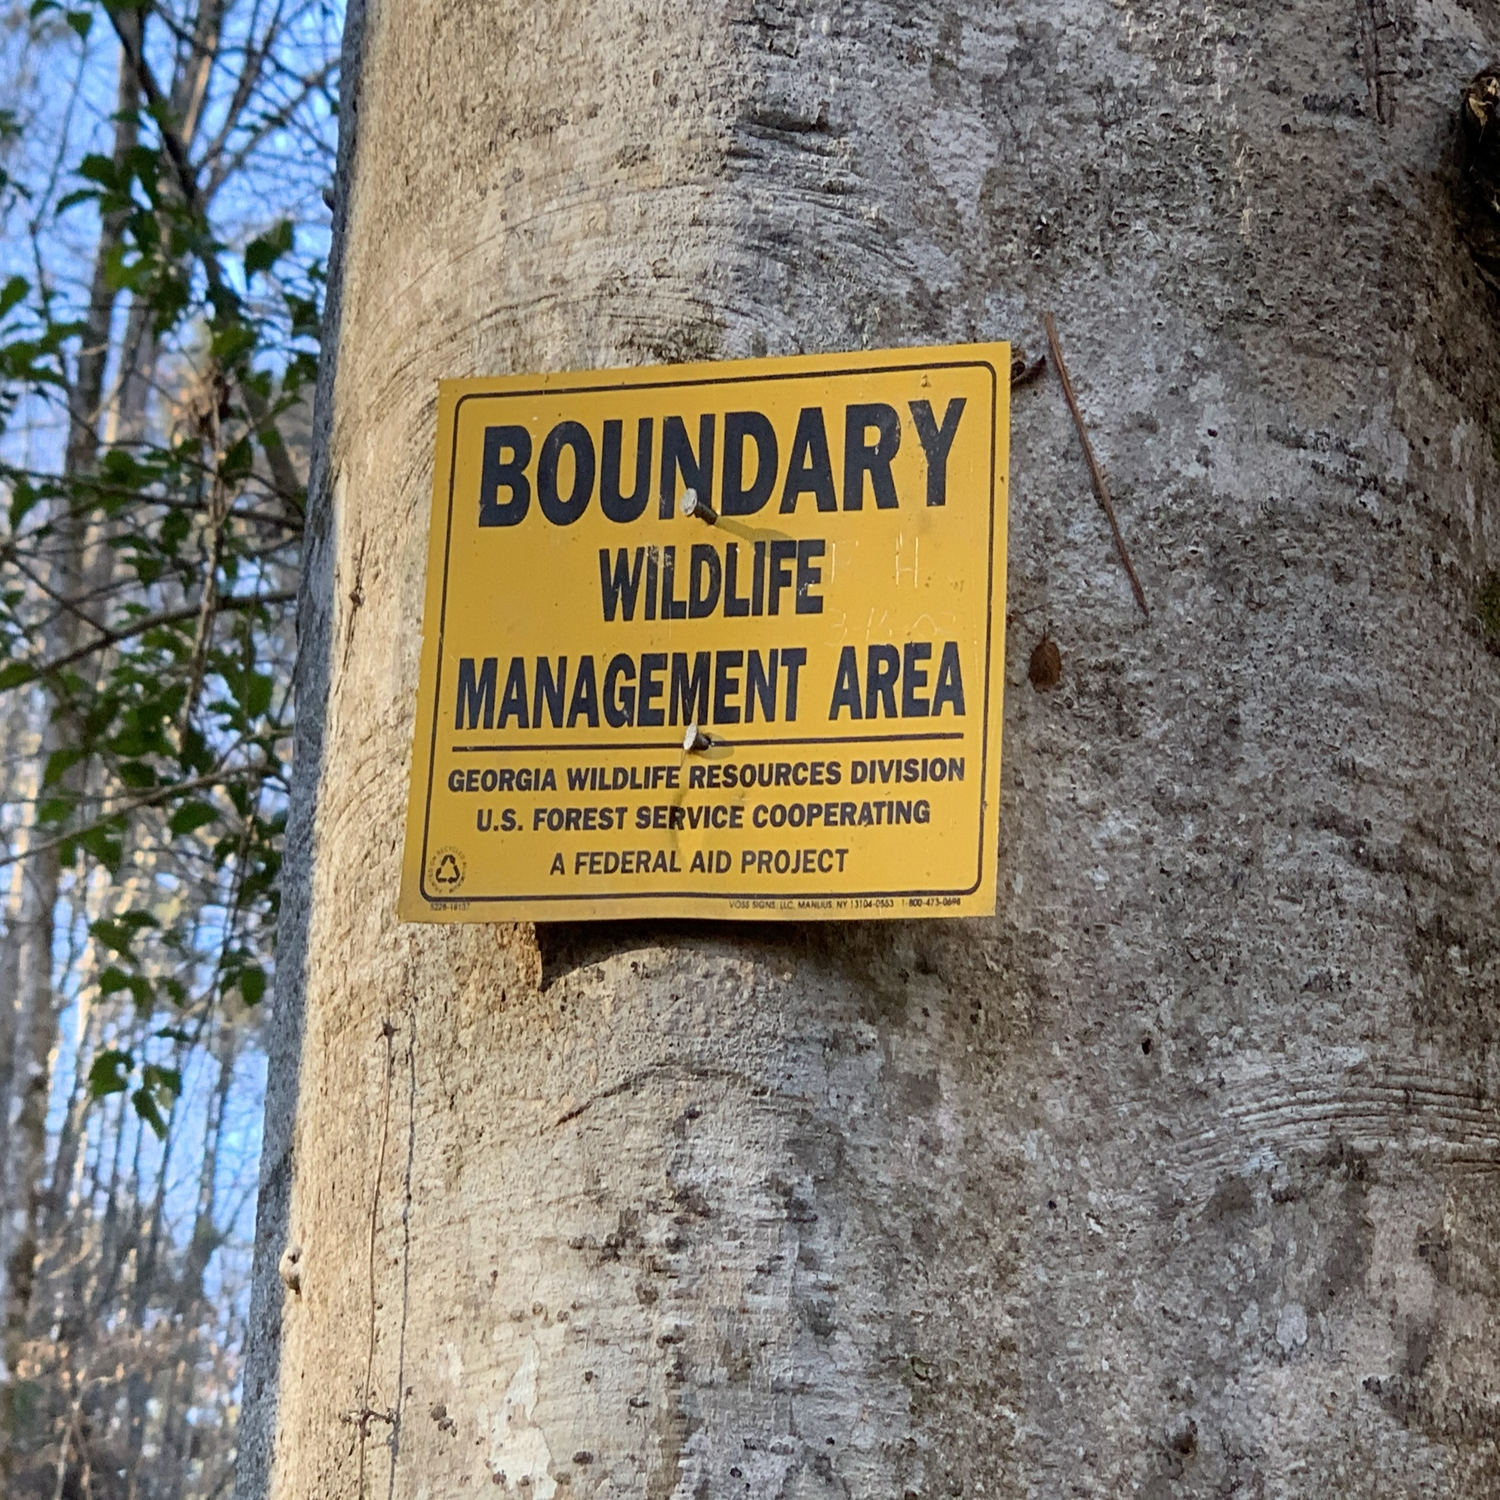 National Forest Boundary butts up against property